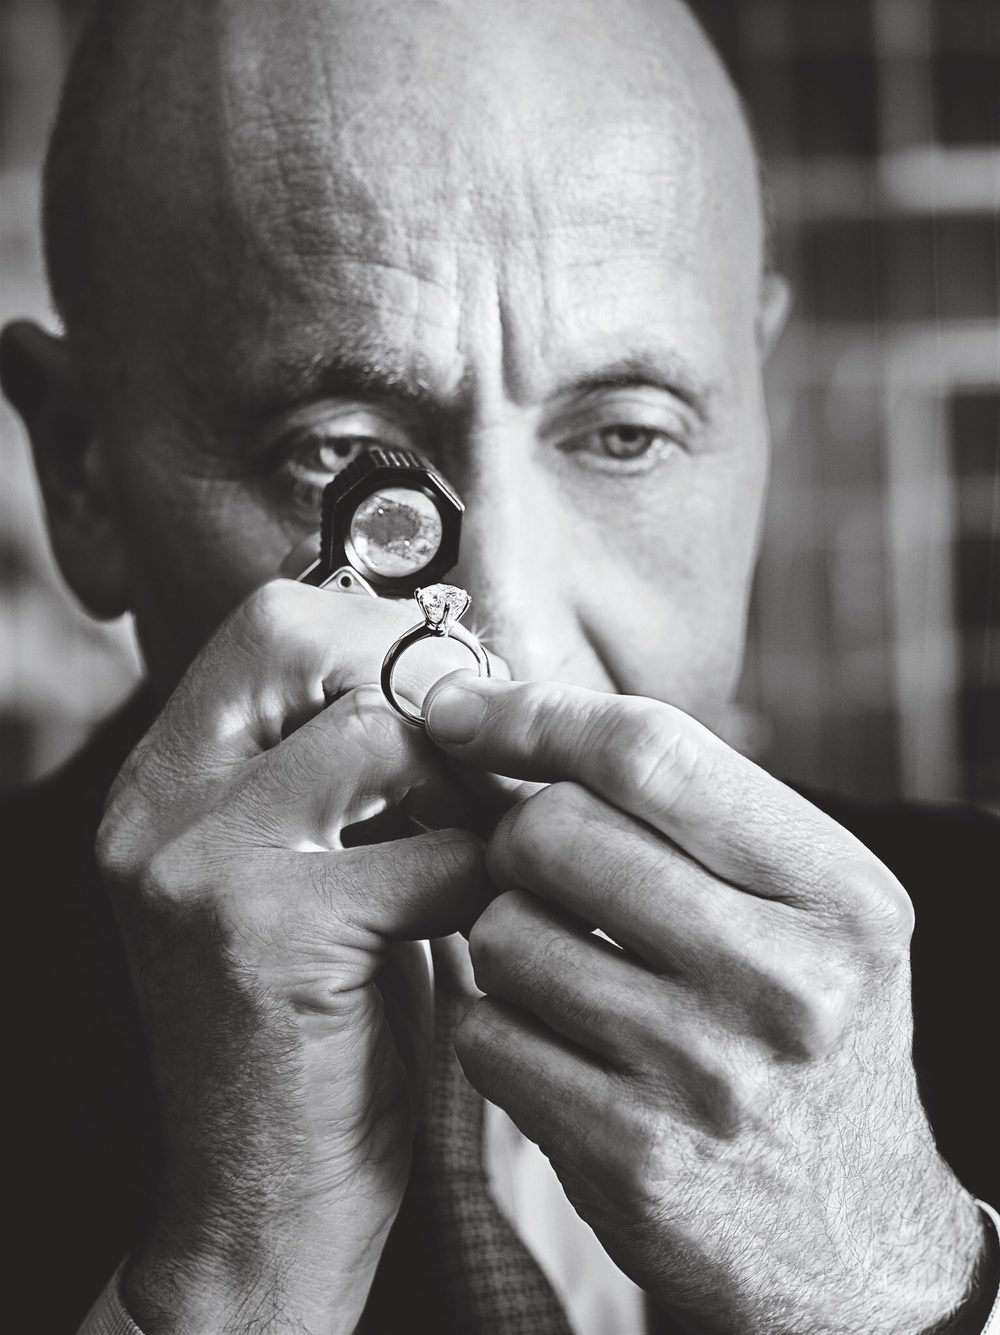 Kirtley gemologist - Tiffany & Co - Artisan at work